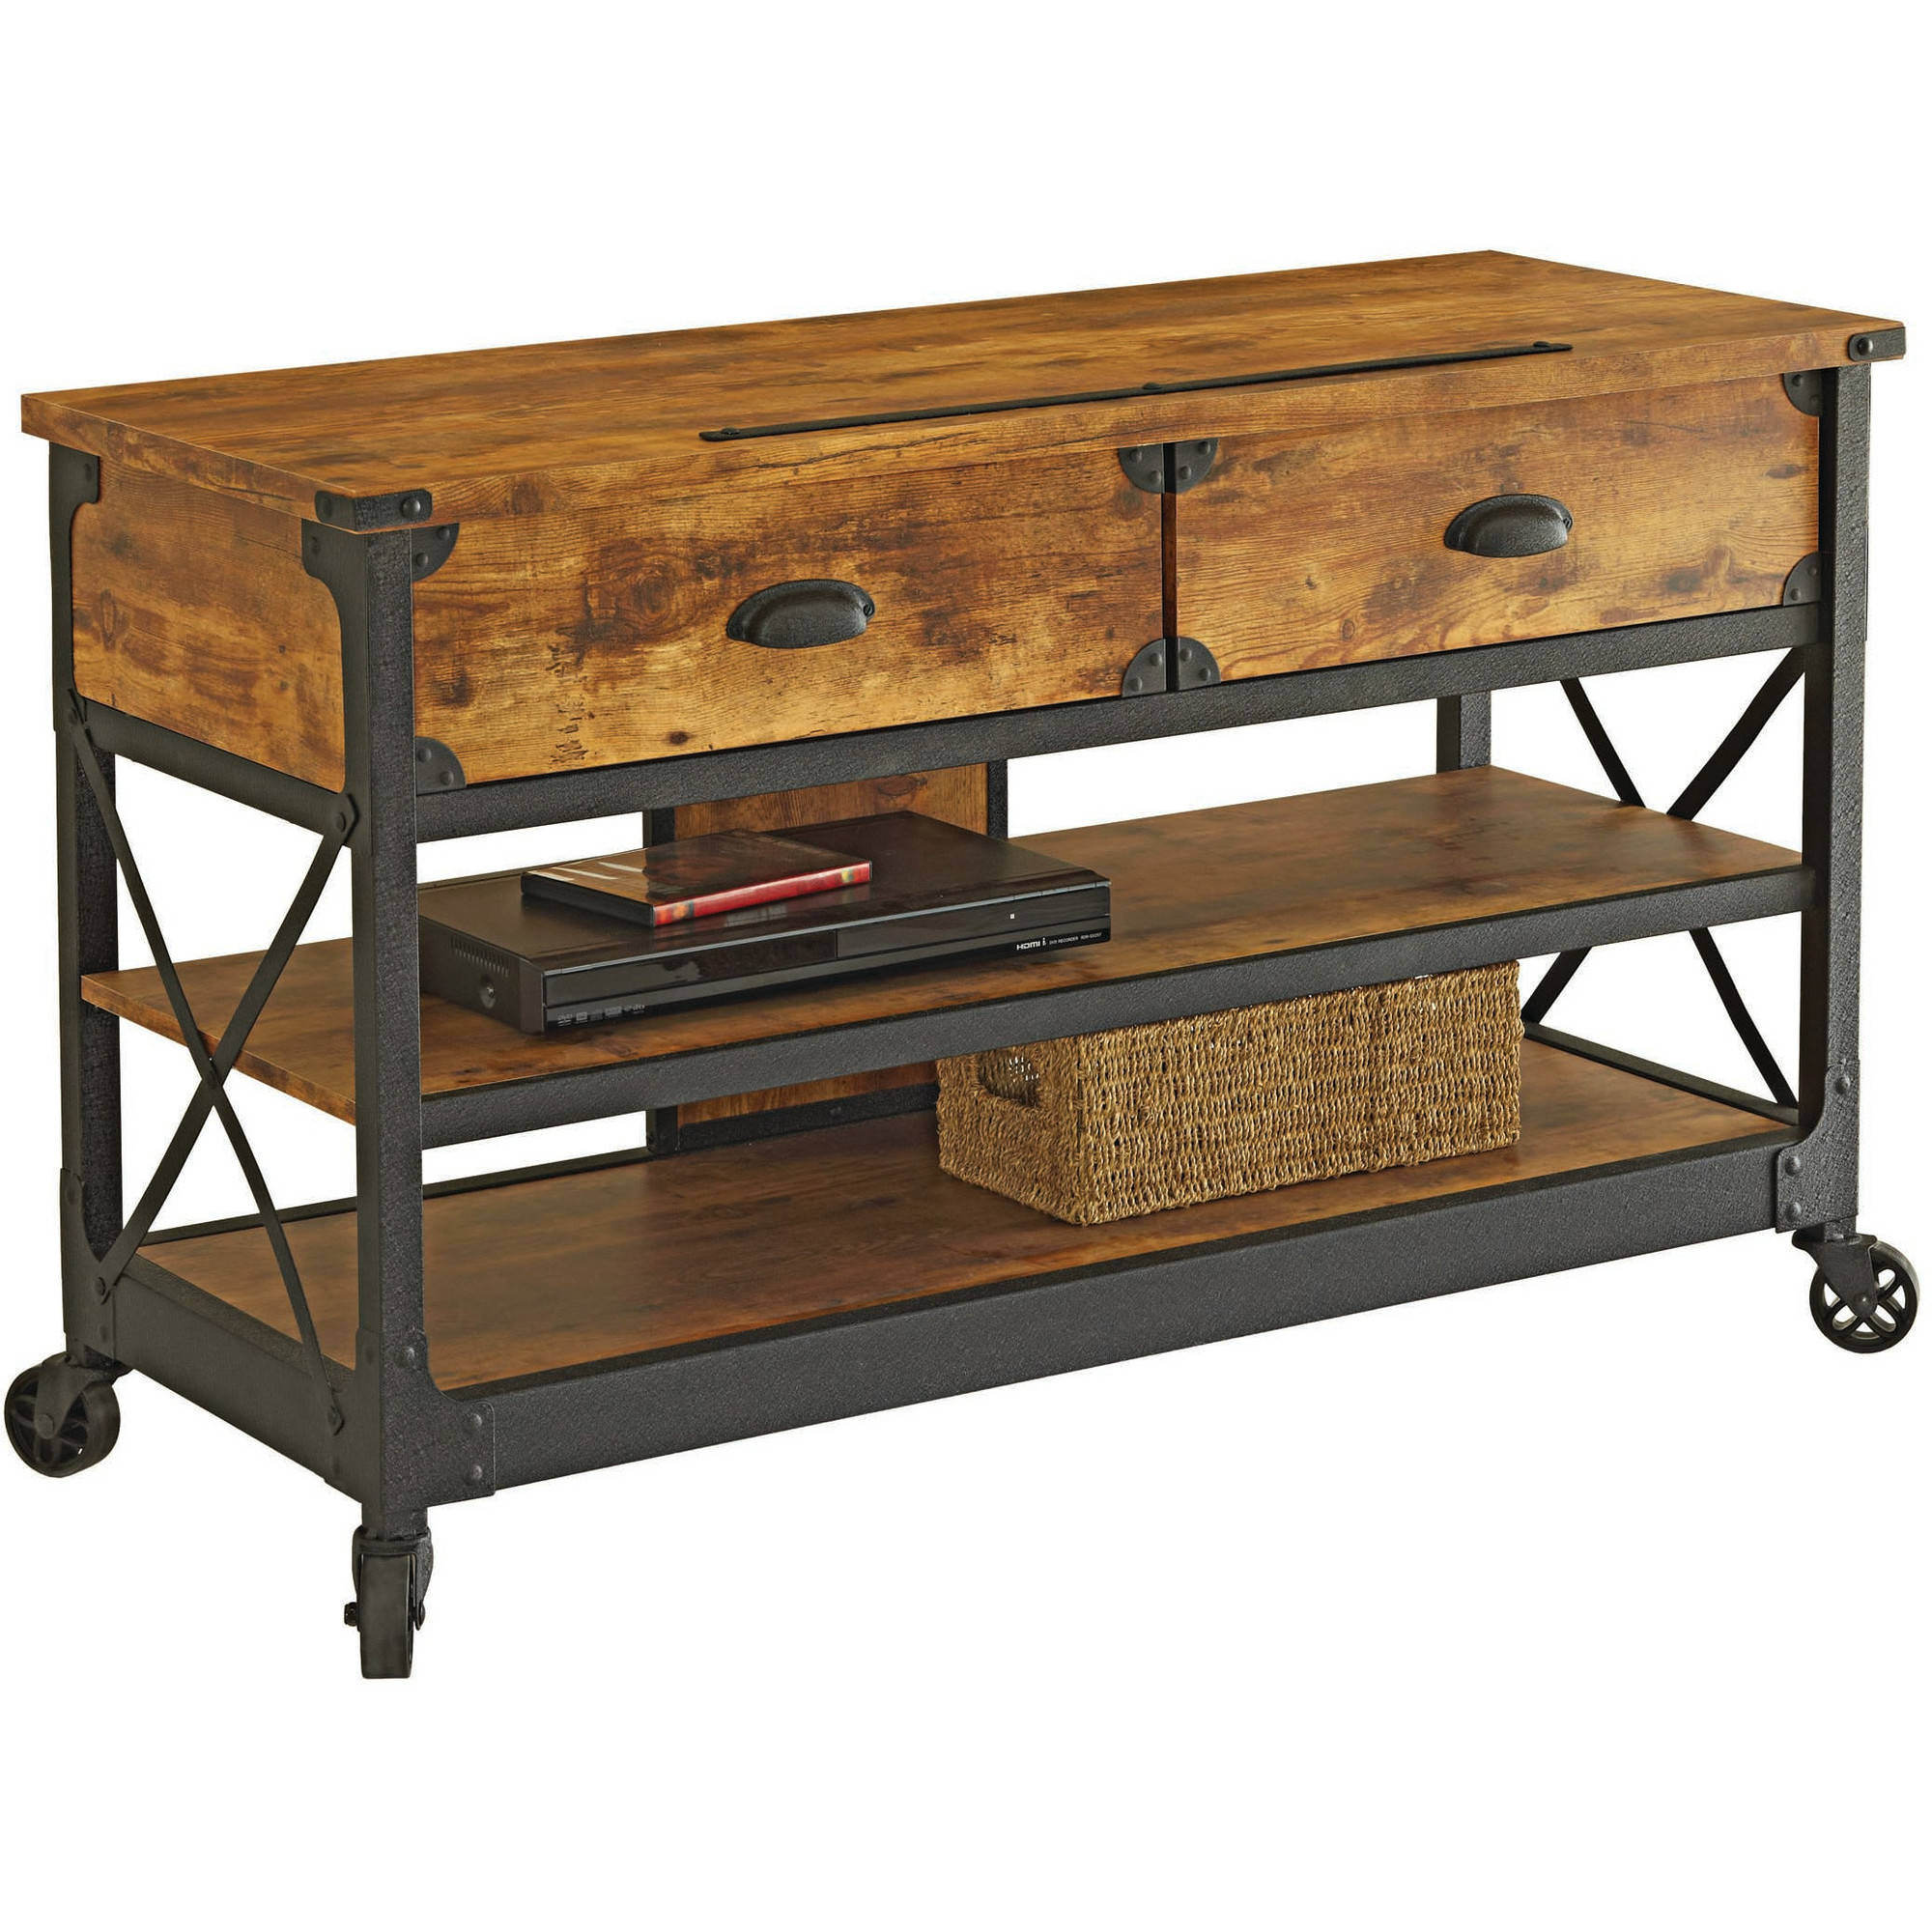 "Better Homes & Gardens Rustic Country TV Stand for TVs up to 52"", Antiqued Black/Pine Finish"